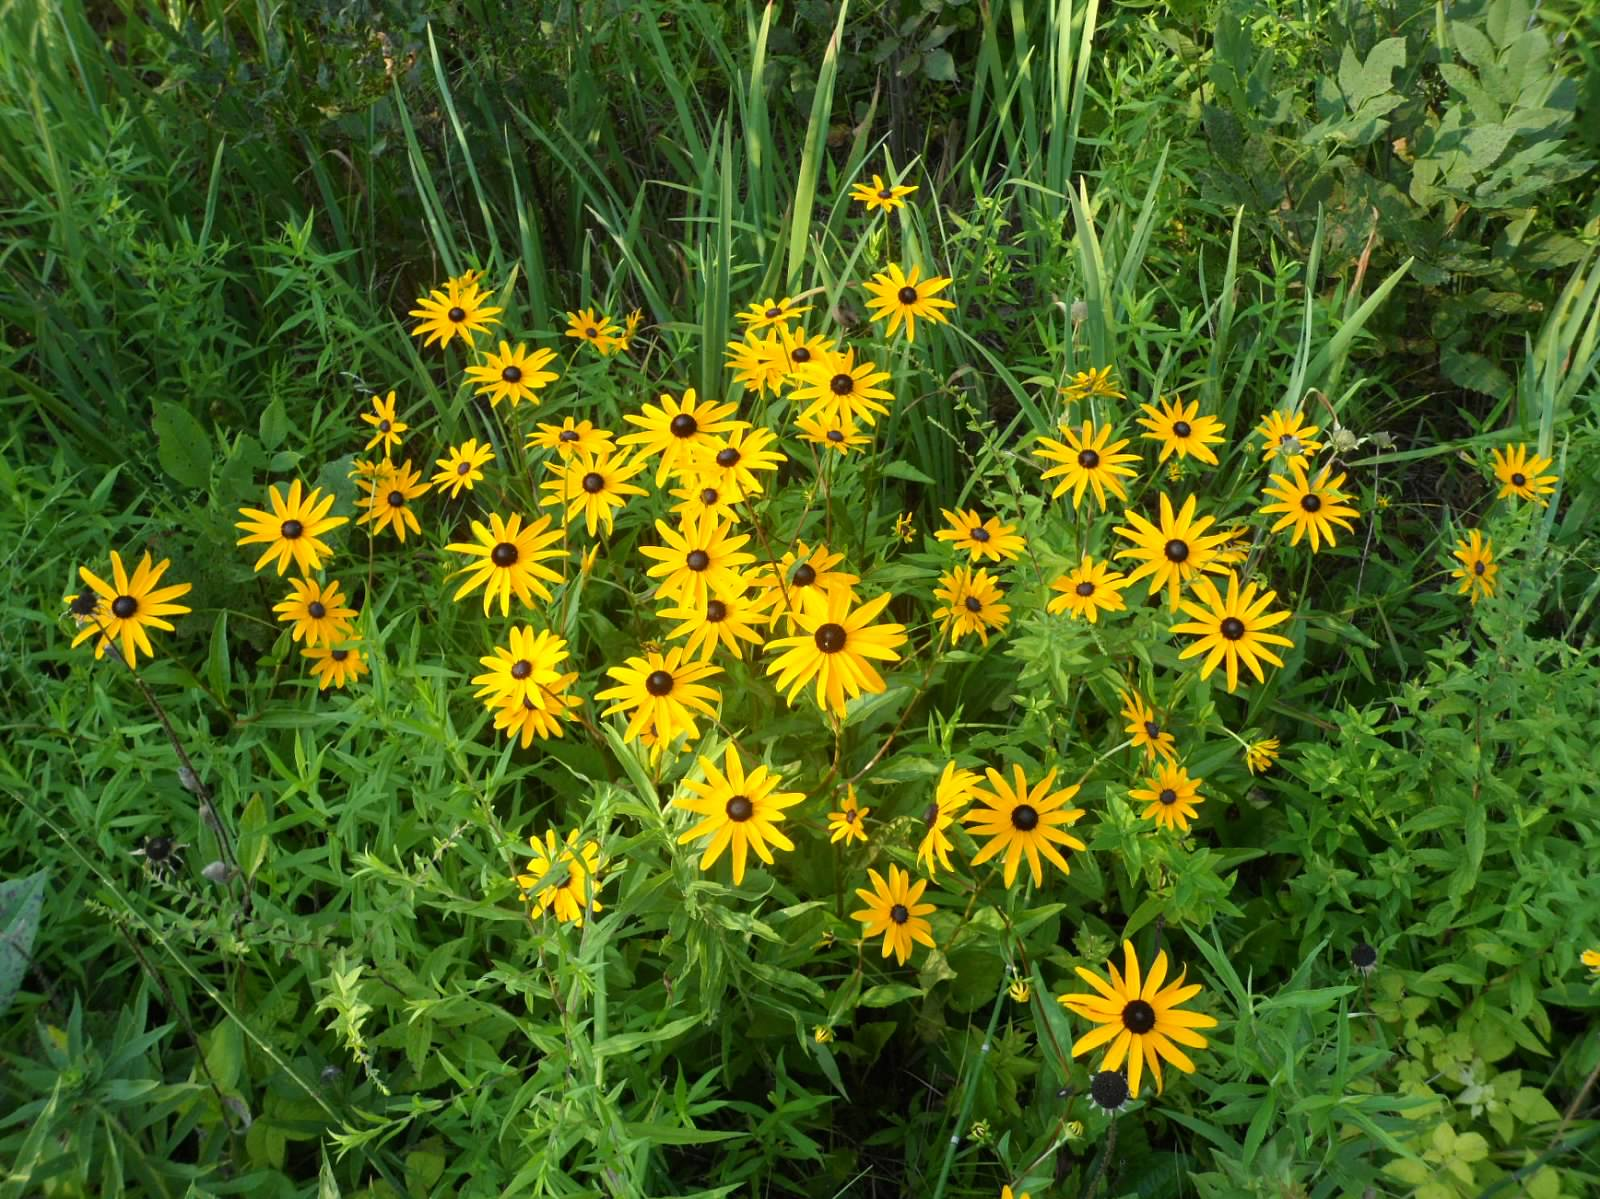 Black eyed susan pere marquette rail trail wildflowers Black eyed susans